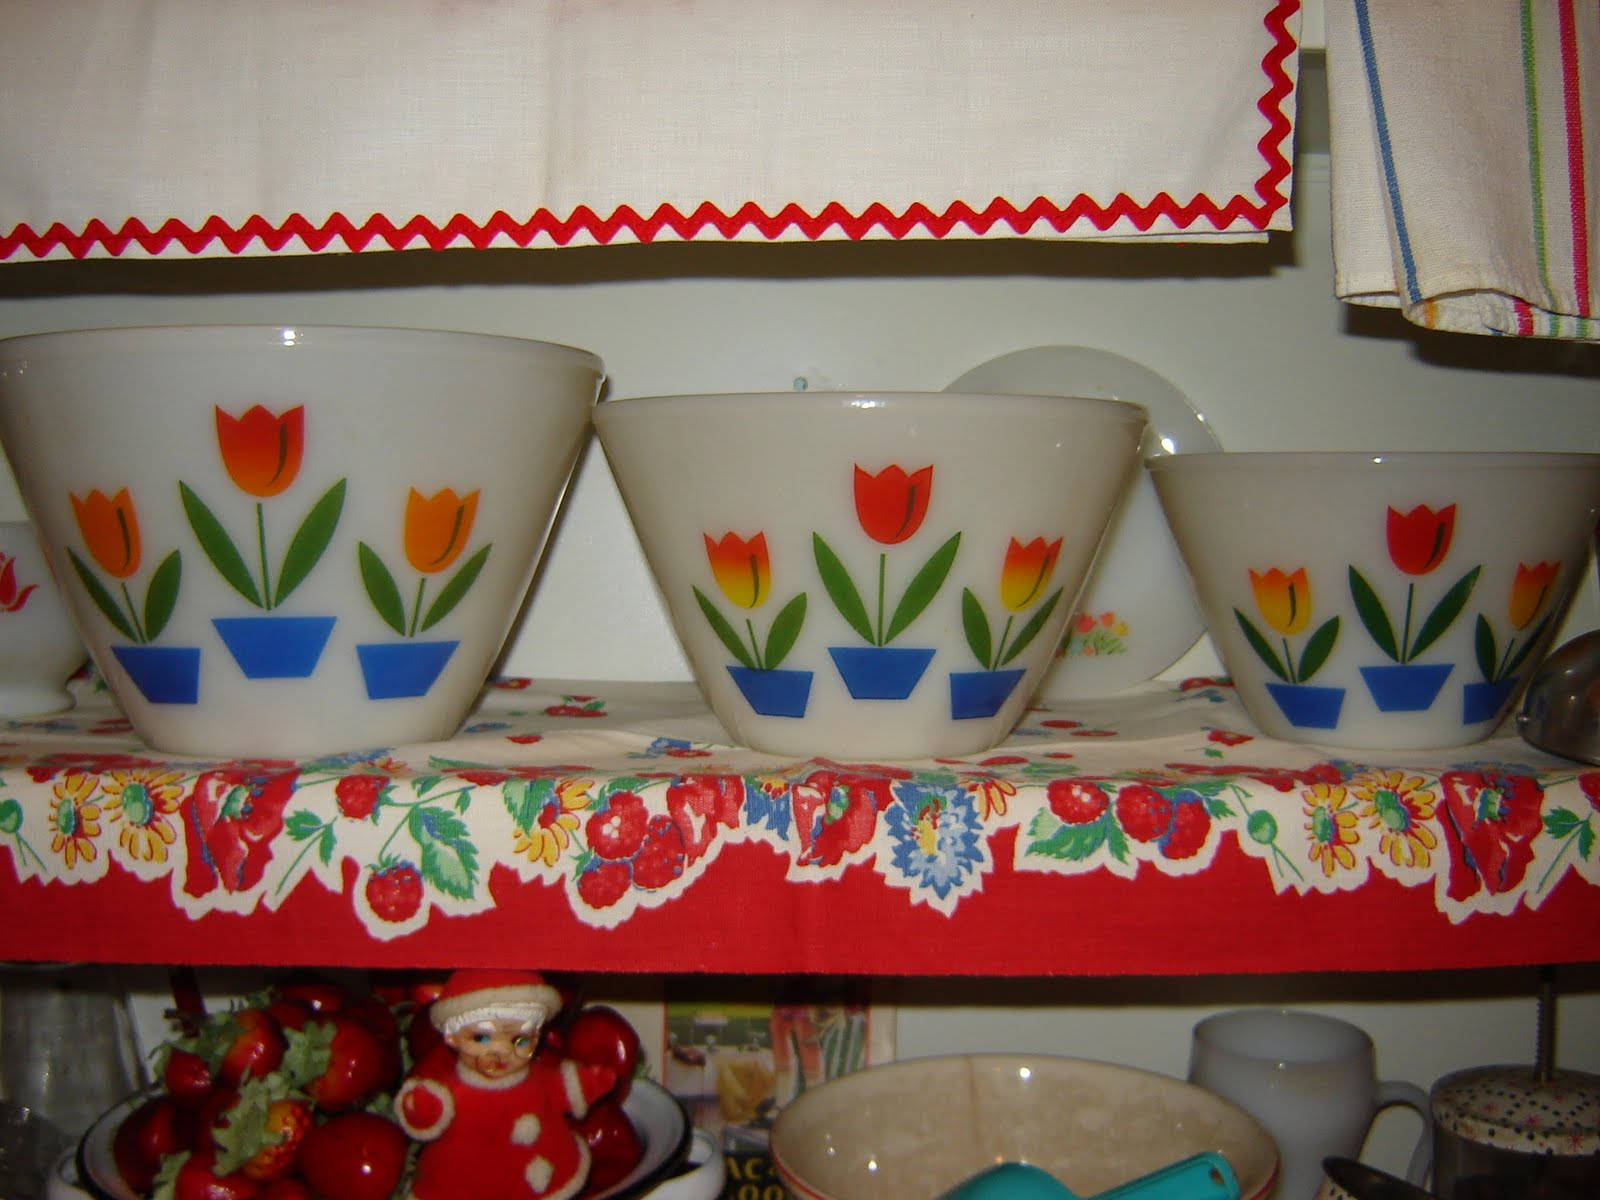 Red vintage kitchen accessories - I Love Vintage Kitchen Accessories And Their Bright Colors I M Especially Fond Of Red